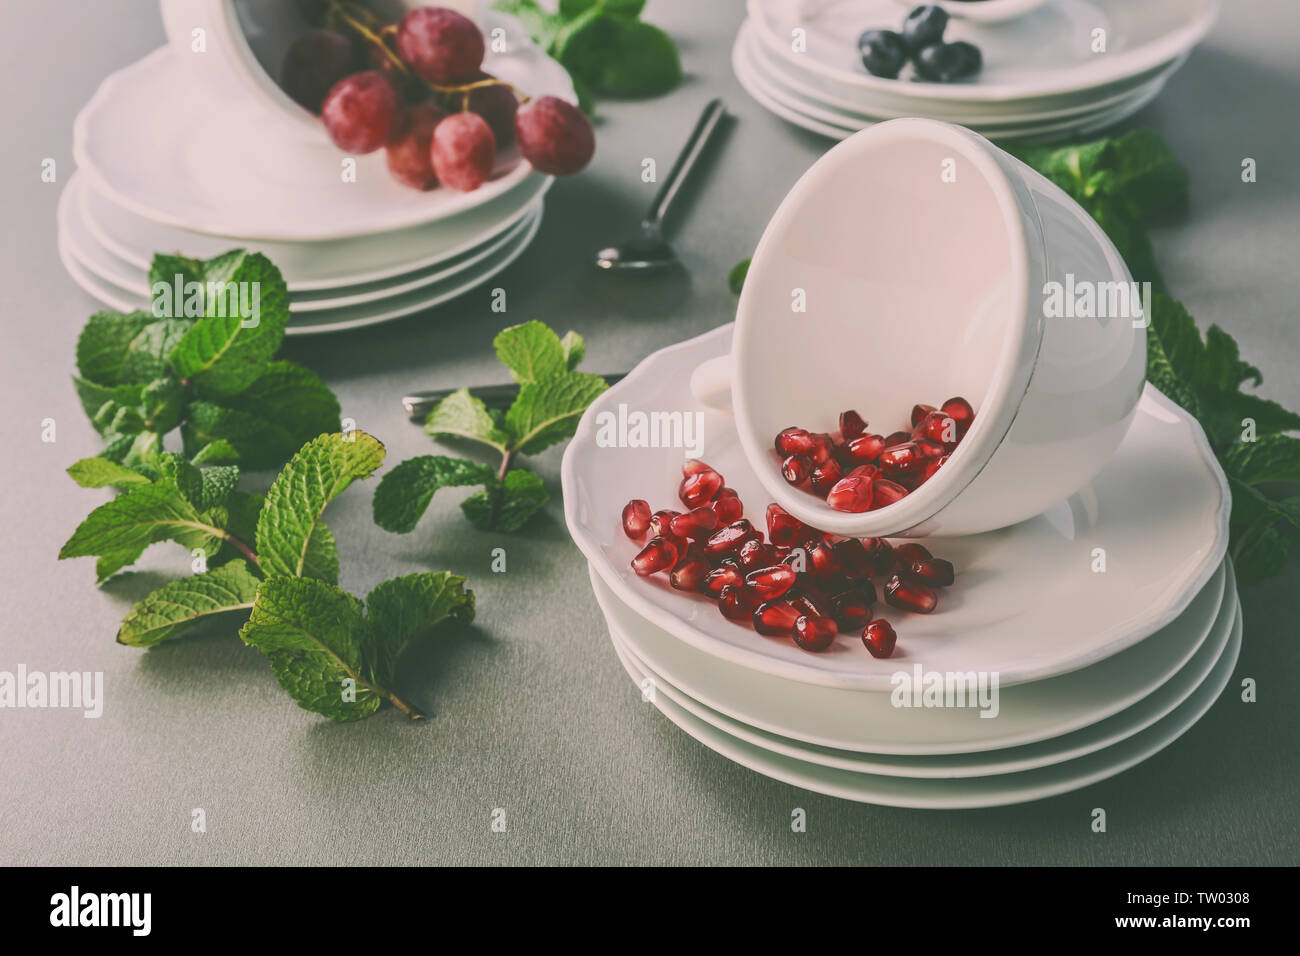 Cups set with grapes, bilberry and garnet on gray background - Stock Image